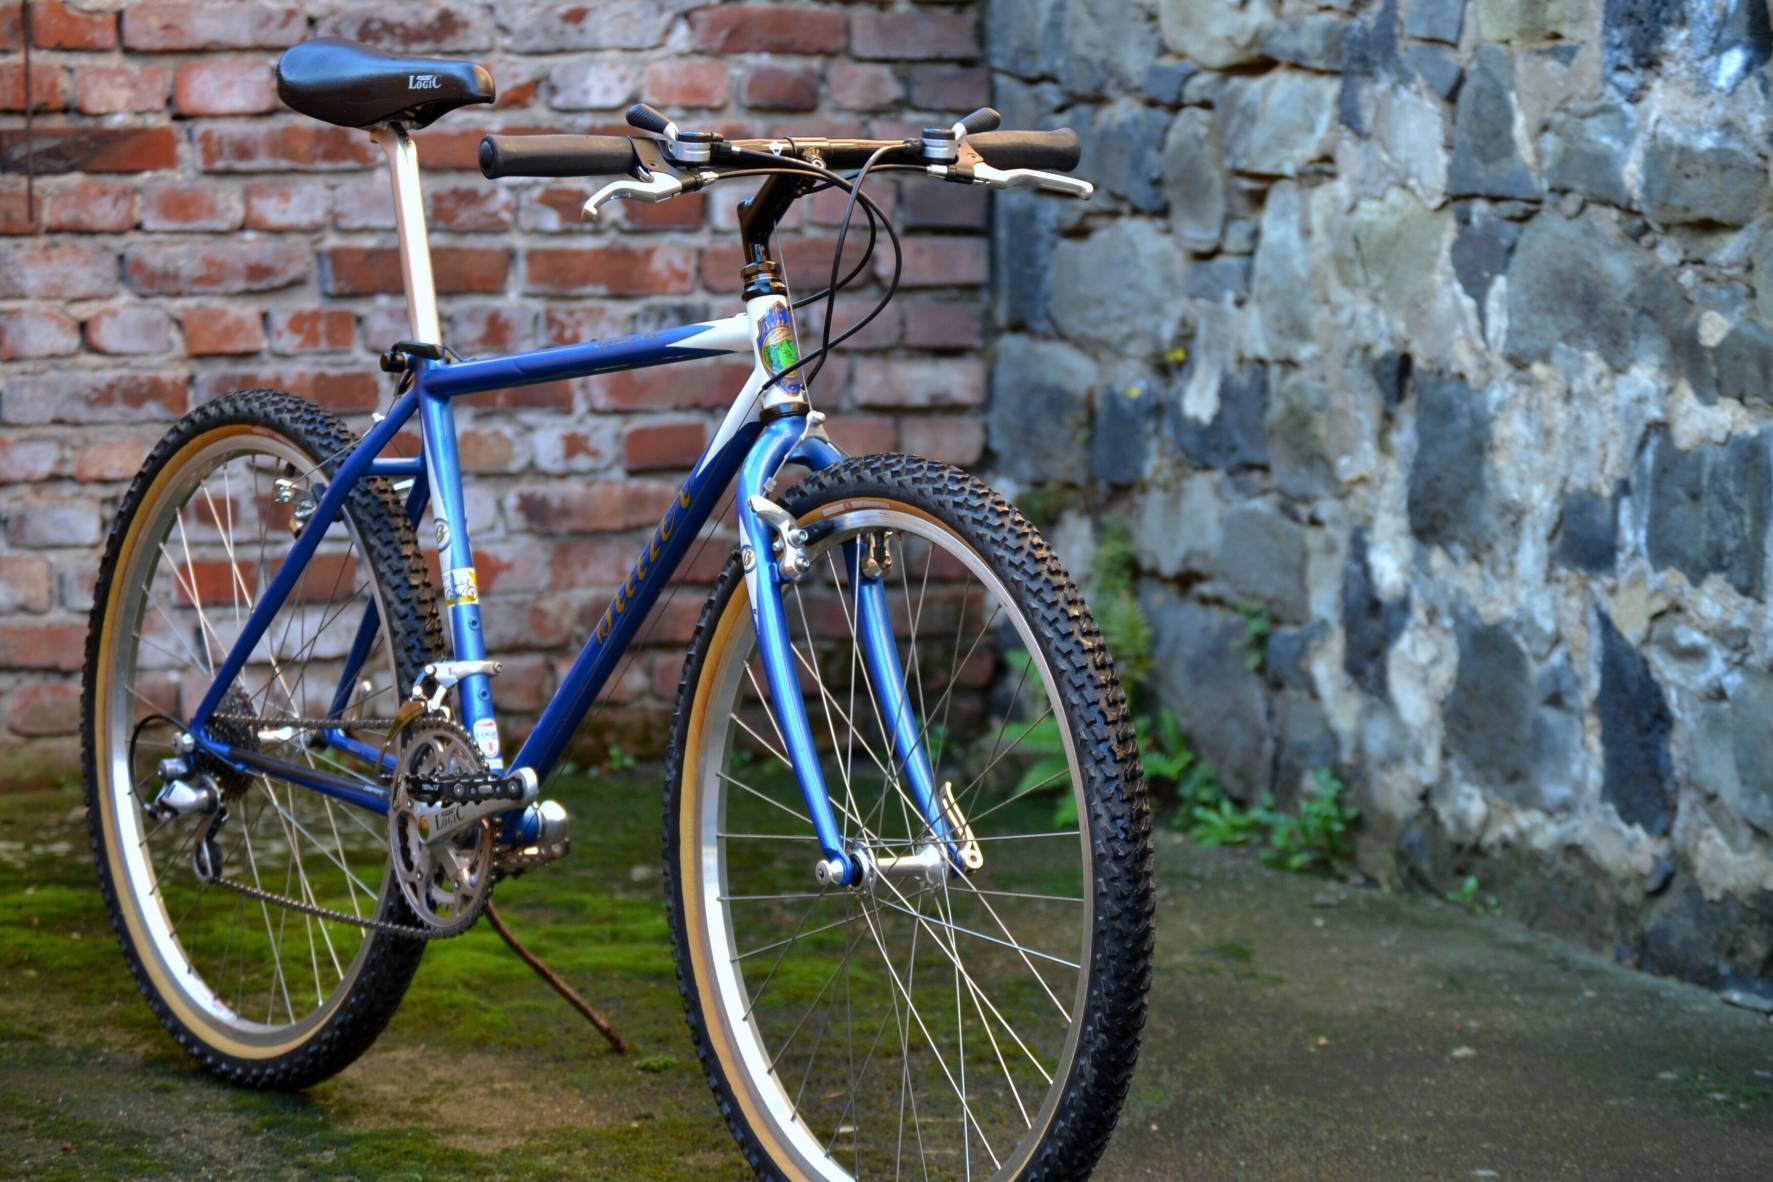 cult MTB Breezer Lightning Flash 1991 #JB0045 018 014